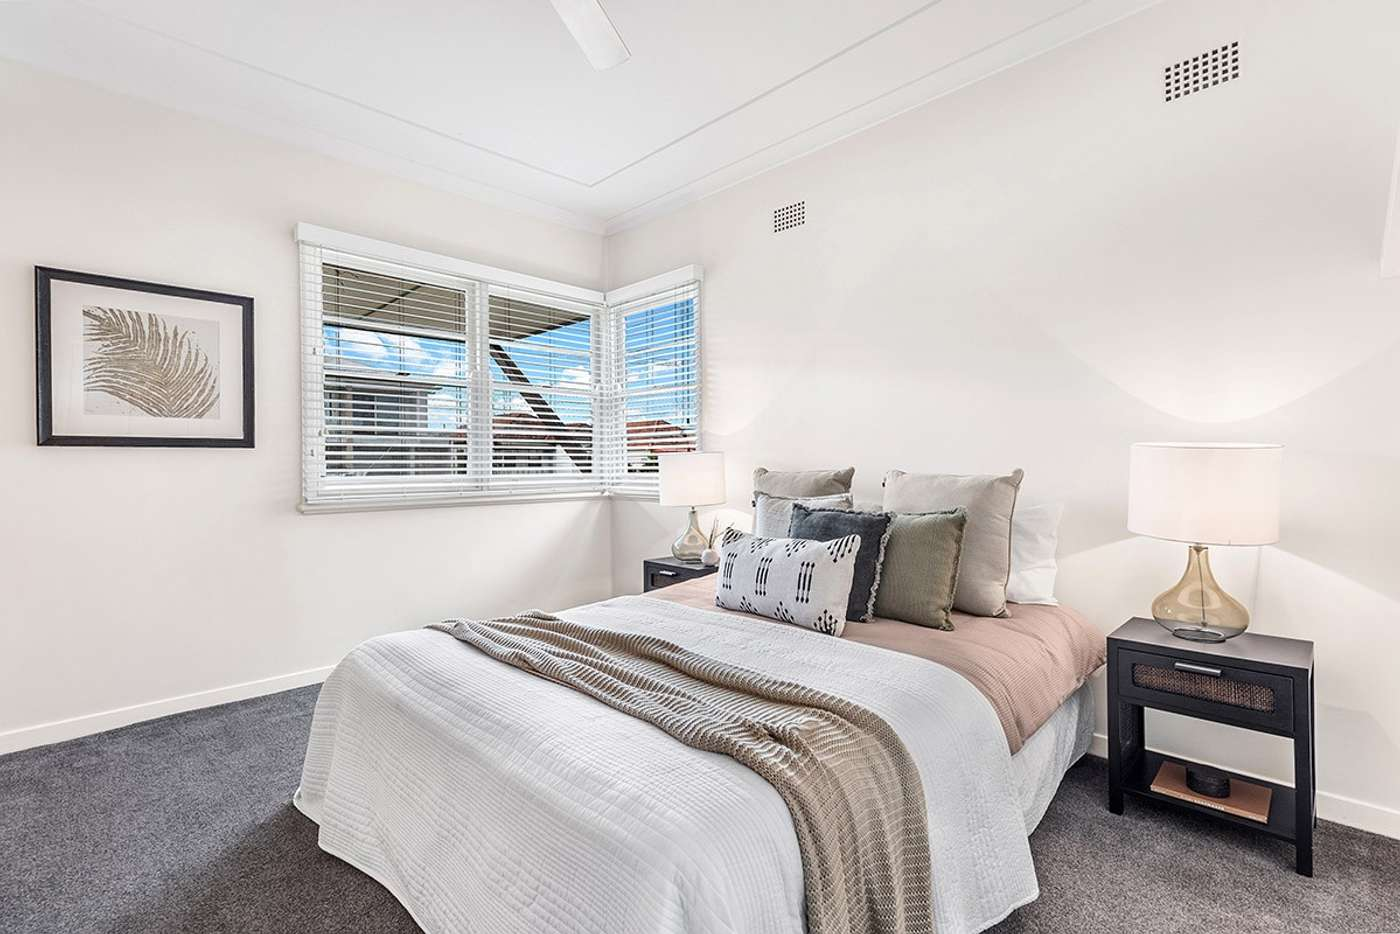 Fifth view of Homely house listing, 5 Henley Street, New Lambton NSW 2305